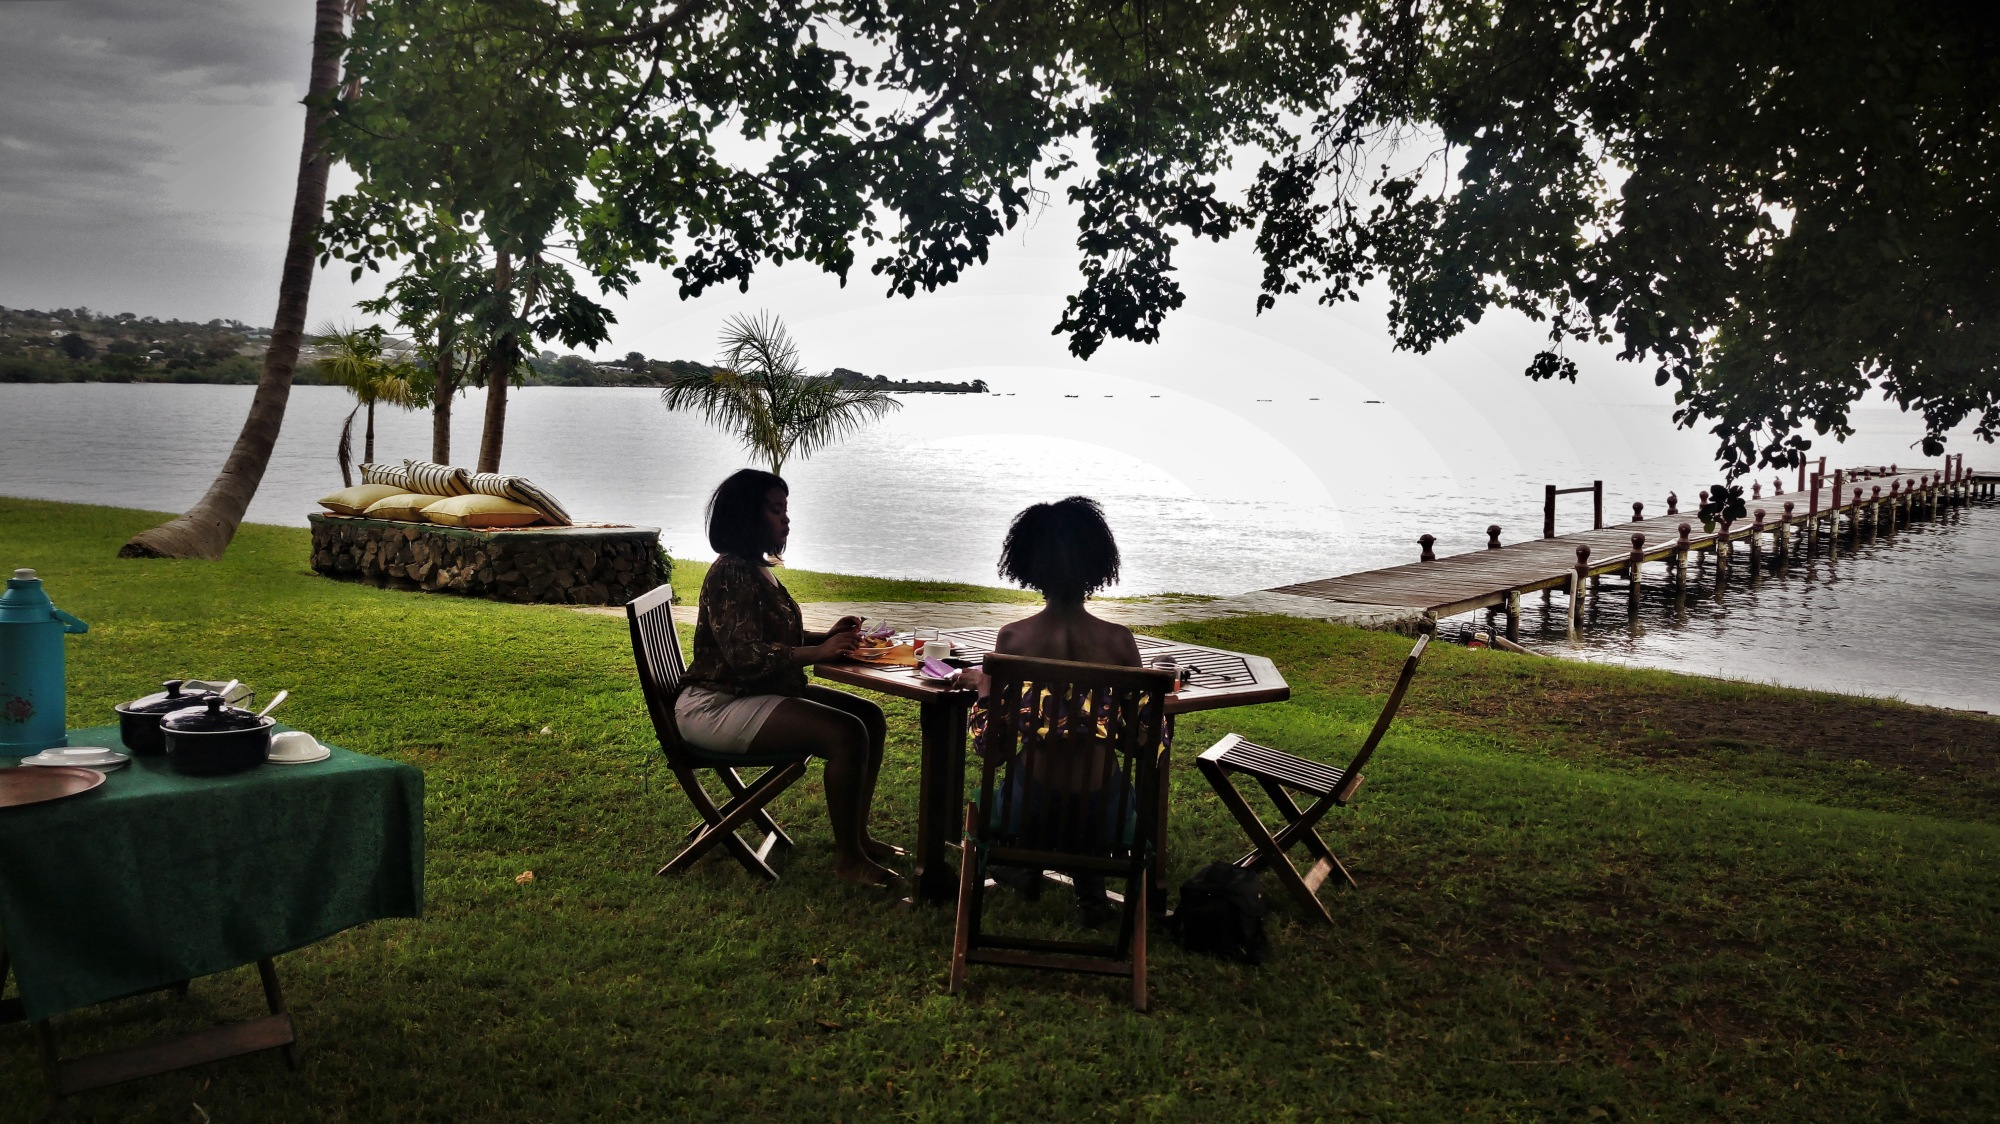 Tourist activities on Lake Victoria